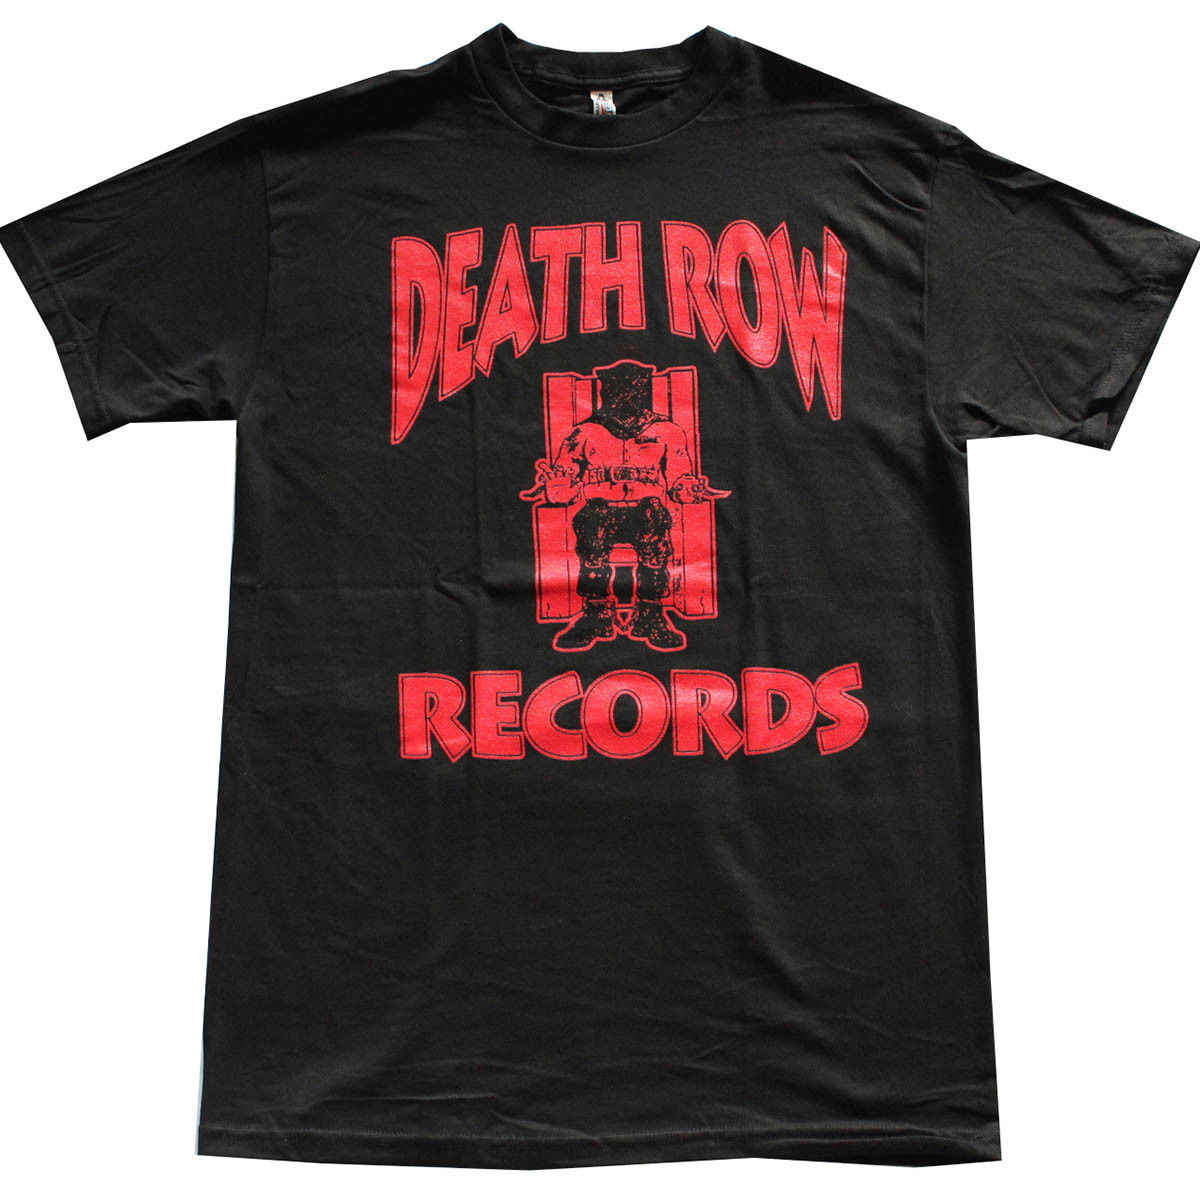 DEATH ROW RECORDS Red Logo Men's T-Shirt Black 2018 Hot Sale New Men'S T Shirt Tee Shirt Casual Short Sleeve